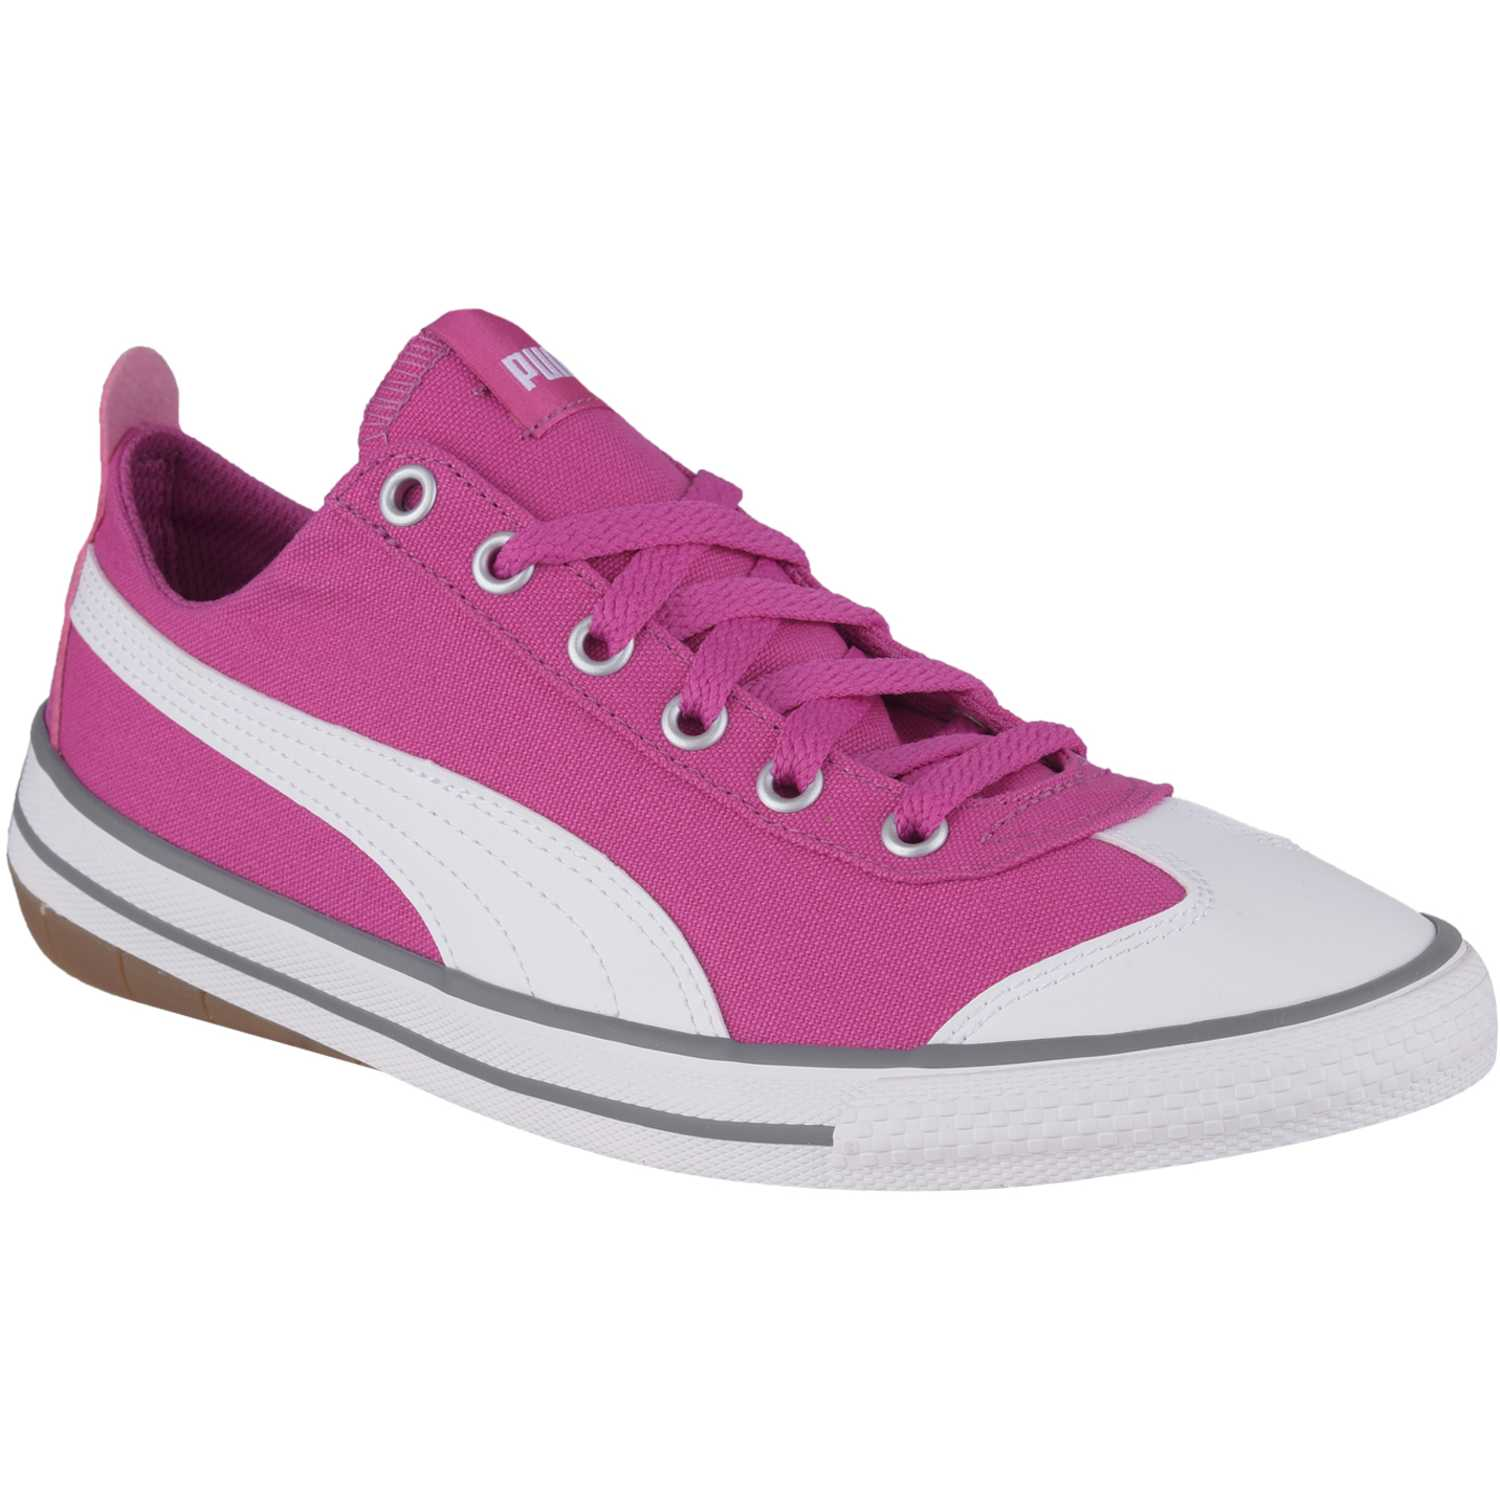 Puma 917 fun Violeta Walking